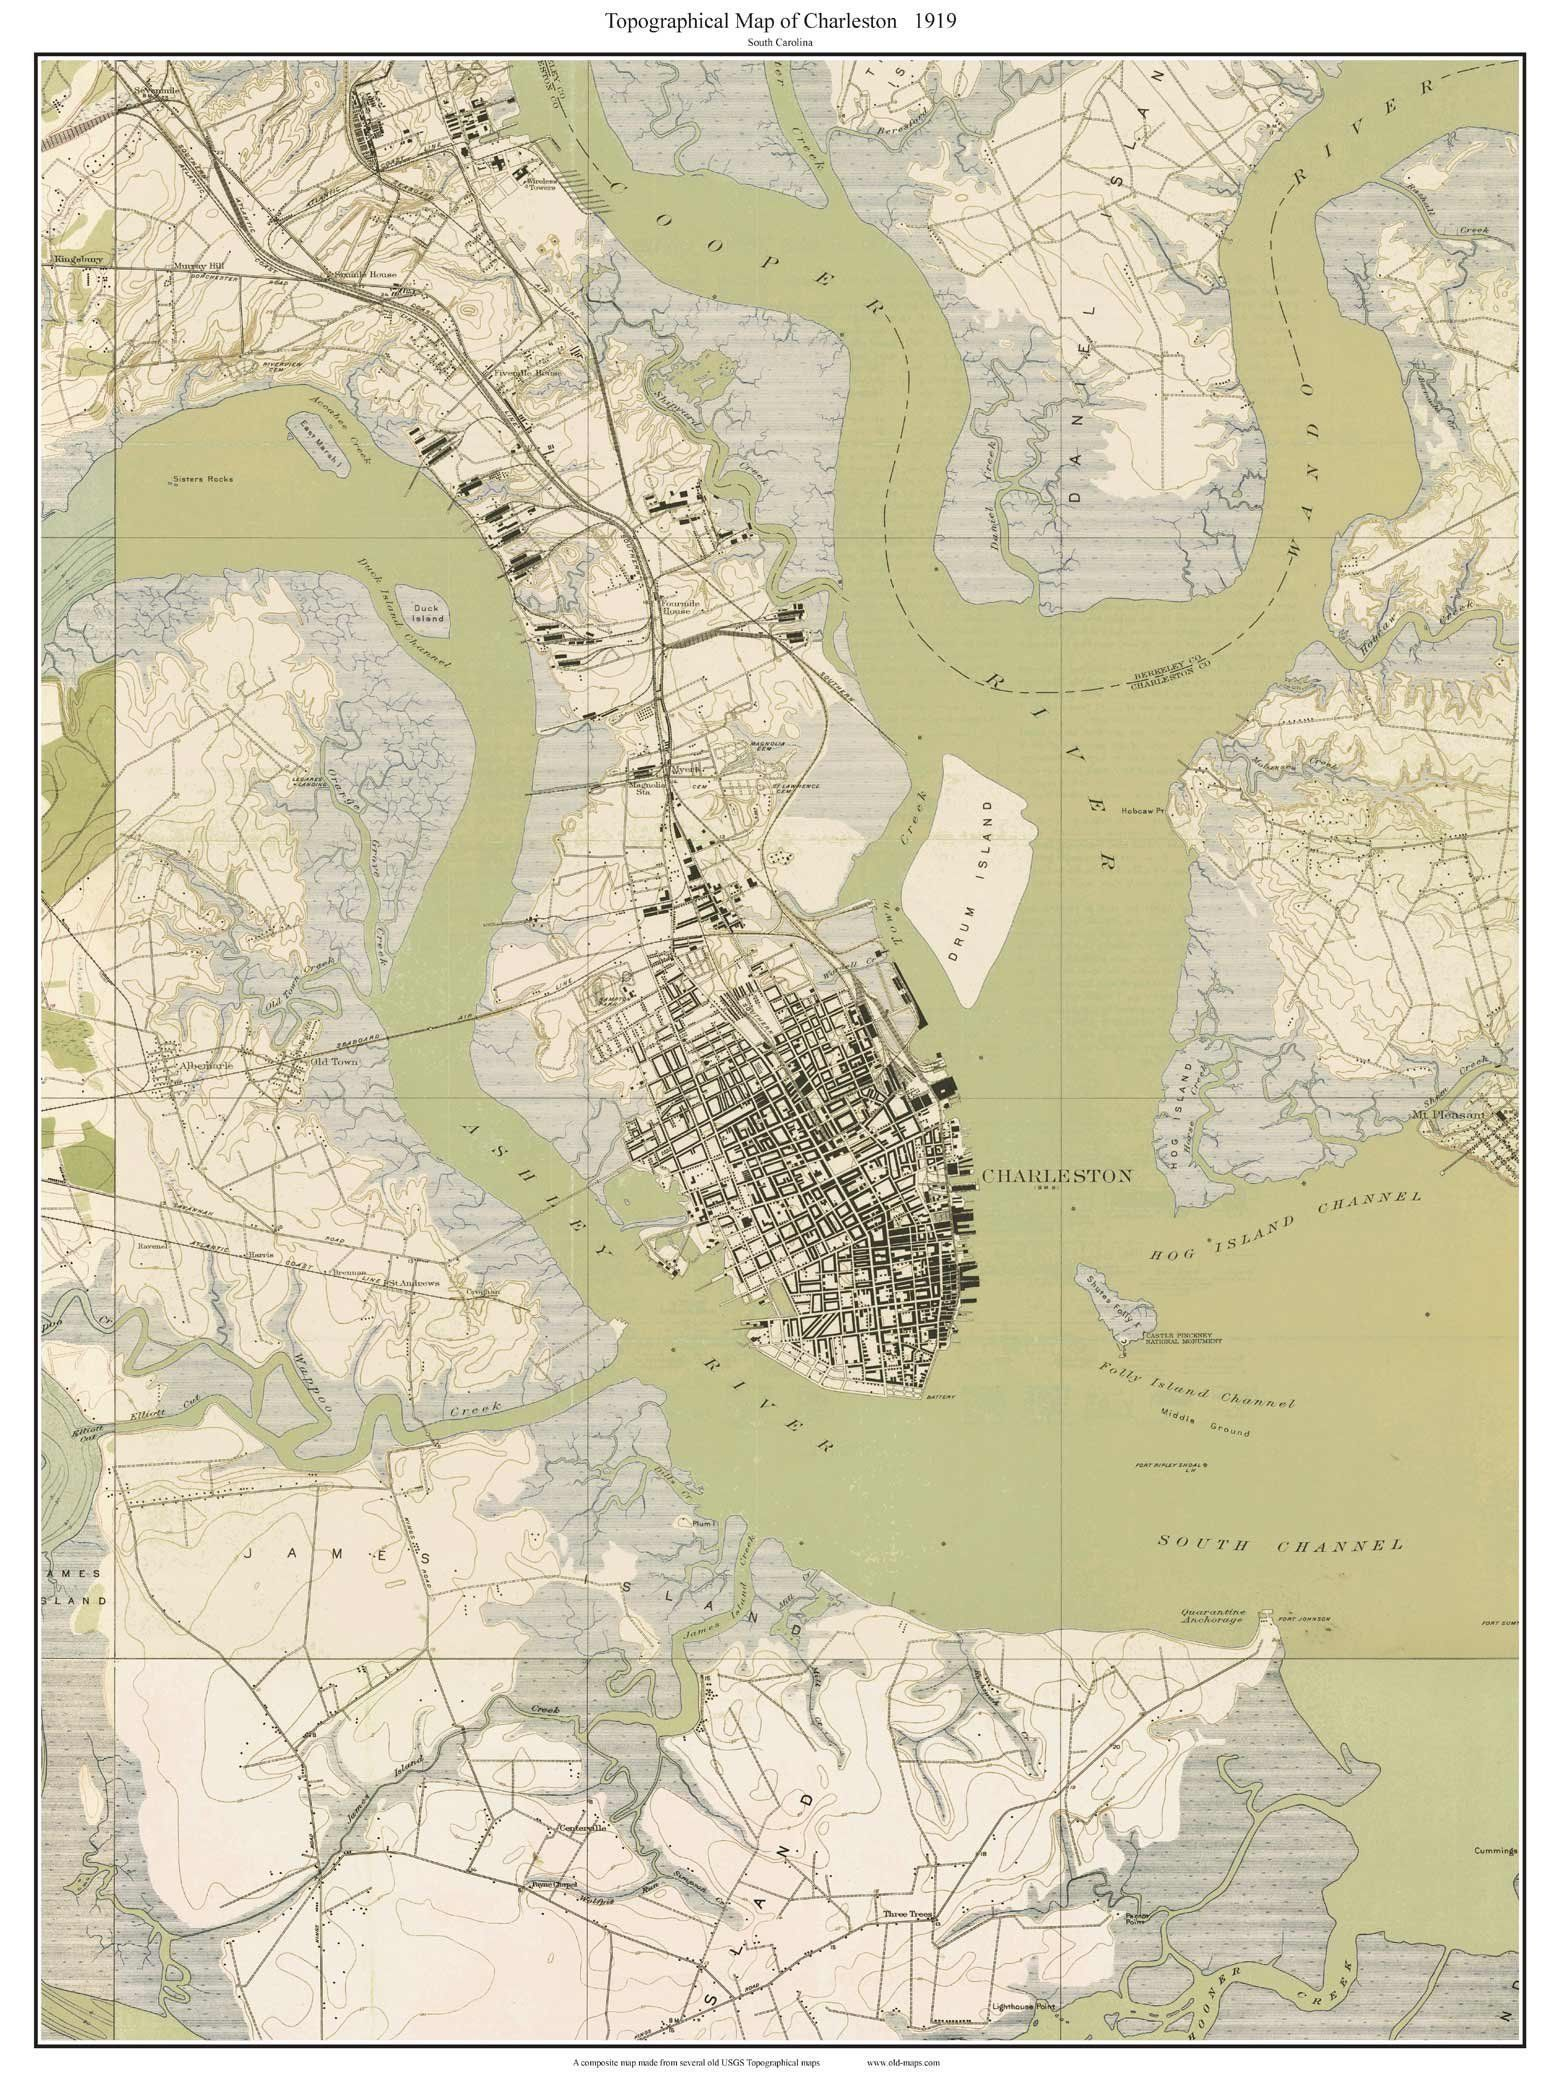 Charleston SC Topo Map USGS Custom Composite Reprint South - How to increase cache size us topo maps pro